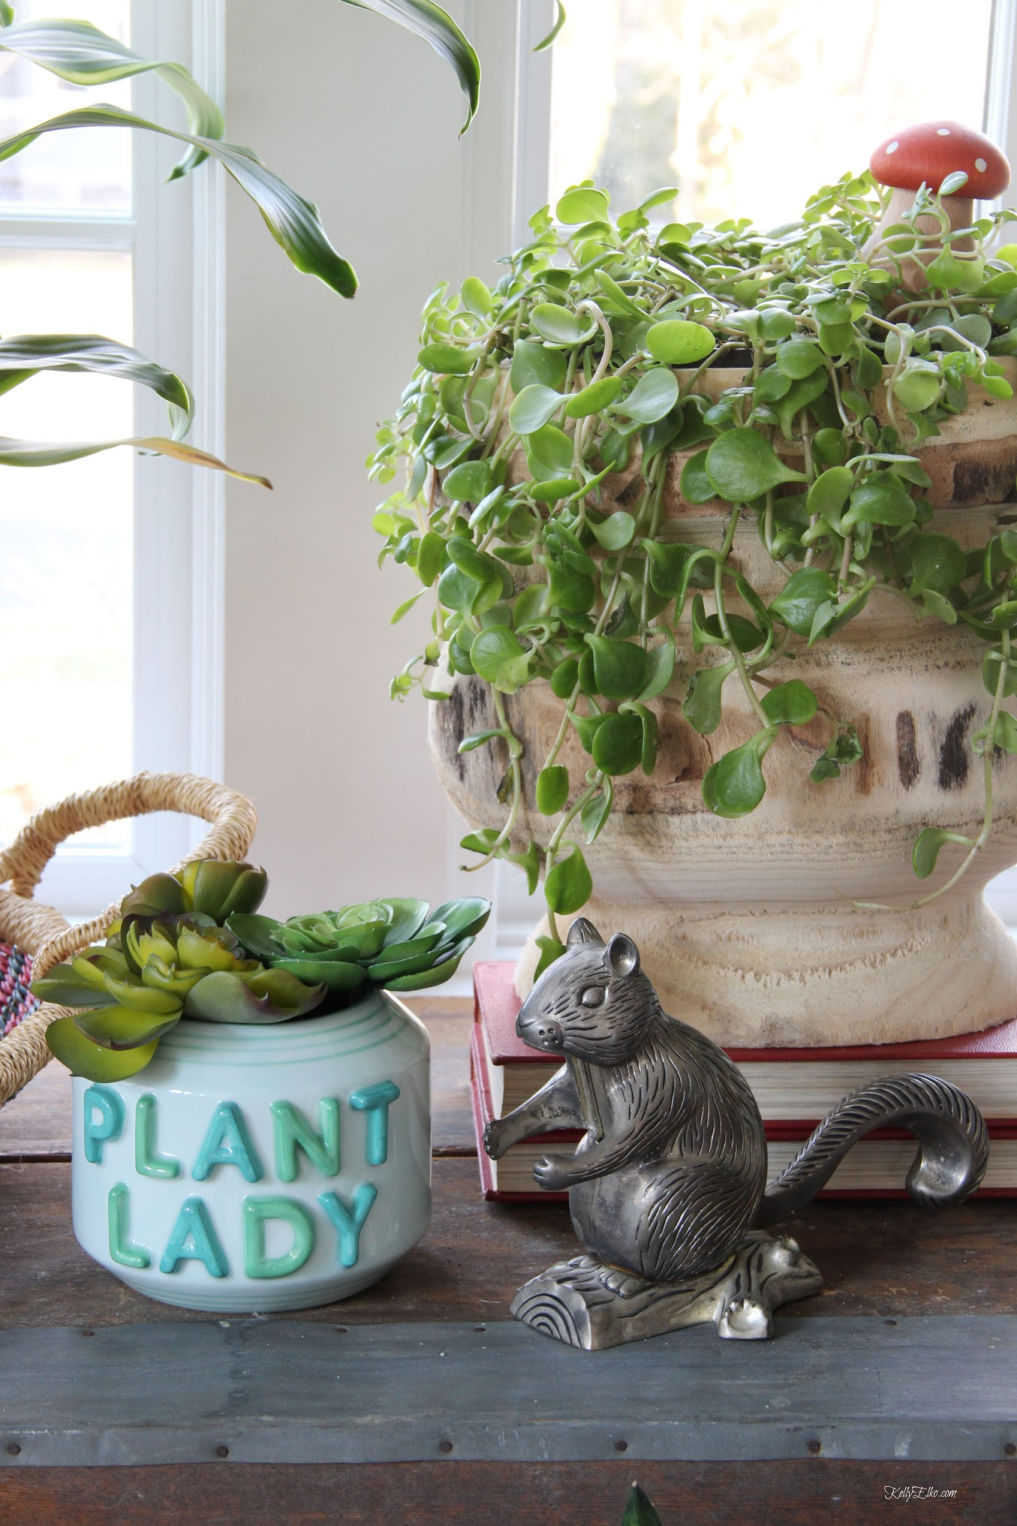 Calling all plant ladies! You need this cute plant lady planter kellyelko.com #planter #plants #houseplants #succulents #tipsandtricks #jungalow